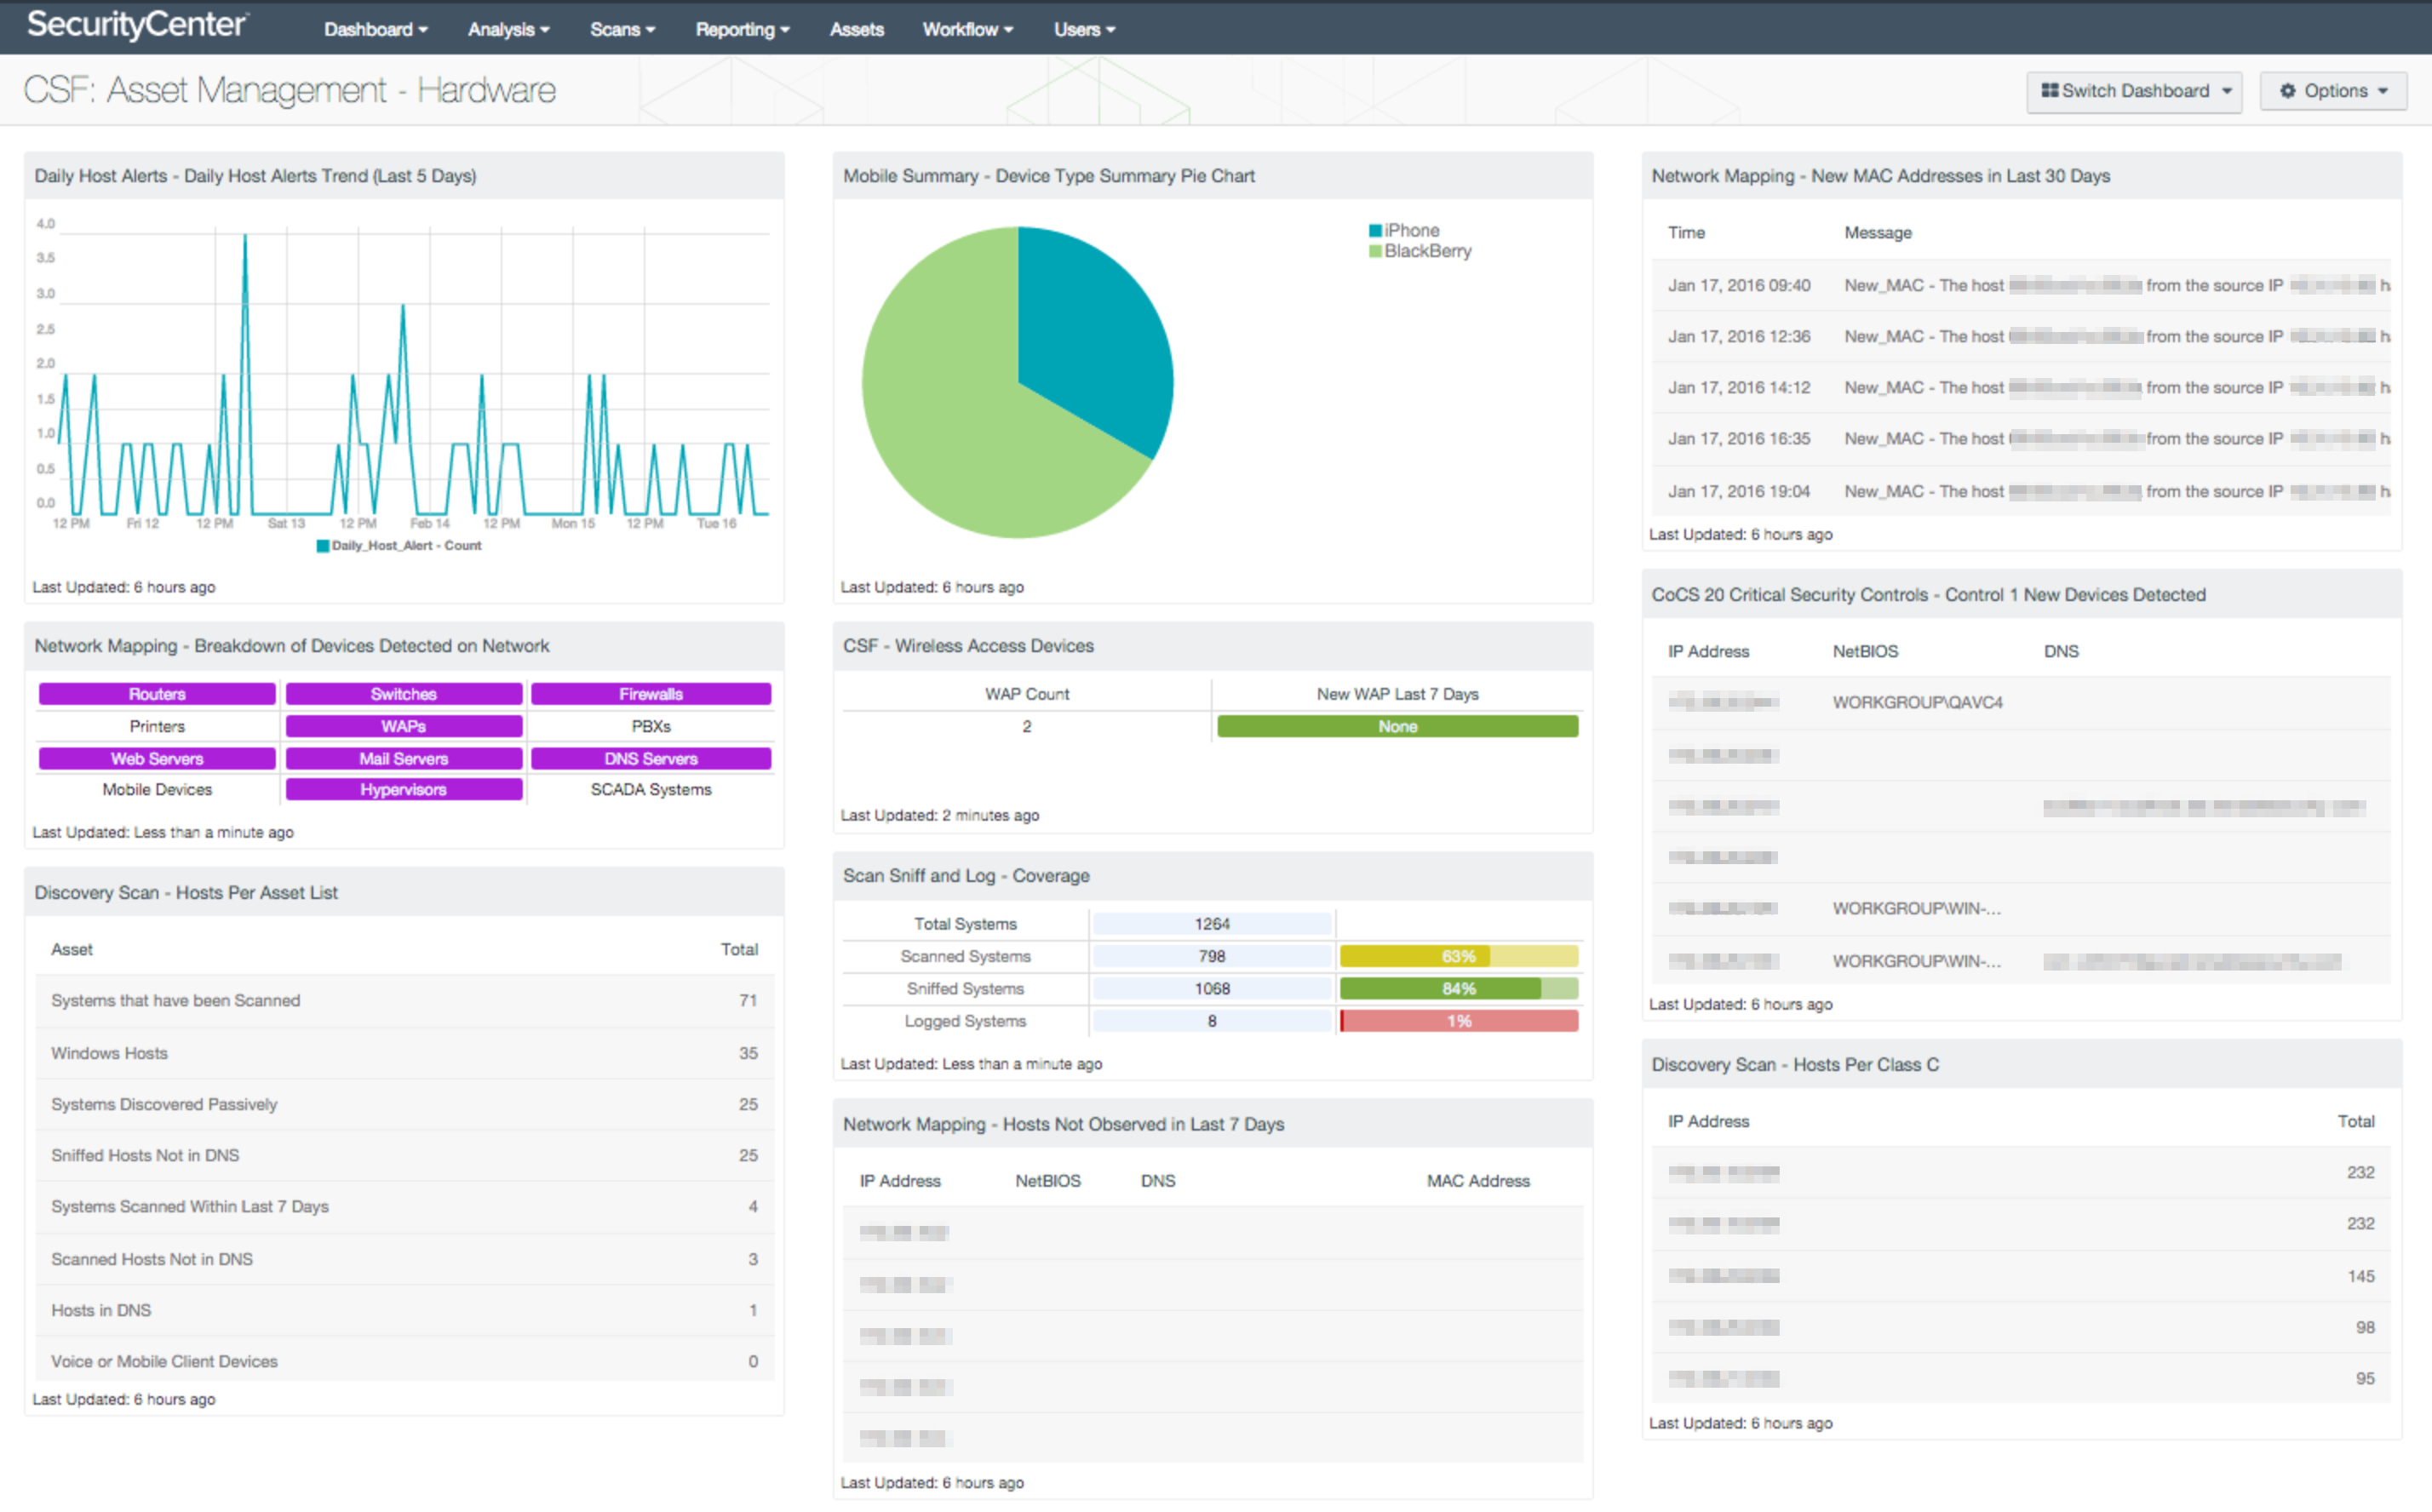 SecurityCenter CV Asset Management Dashboard